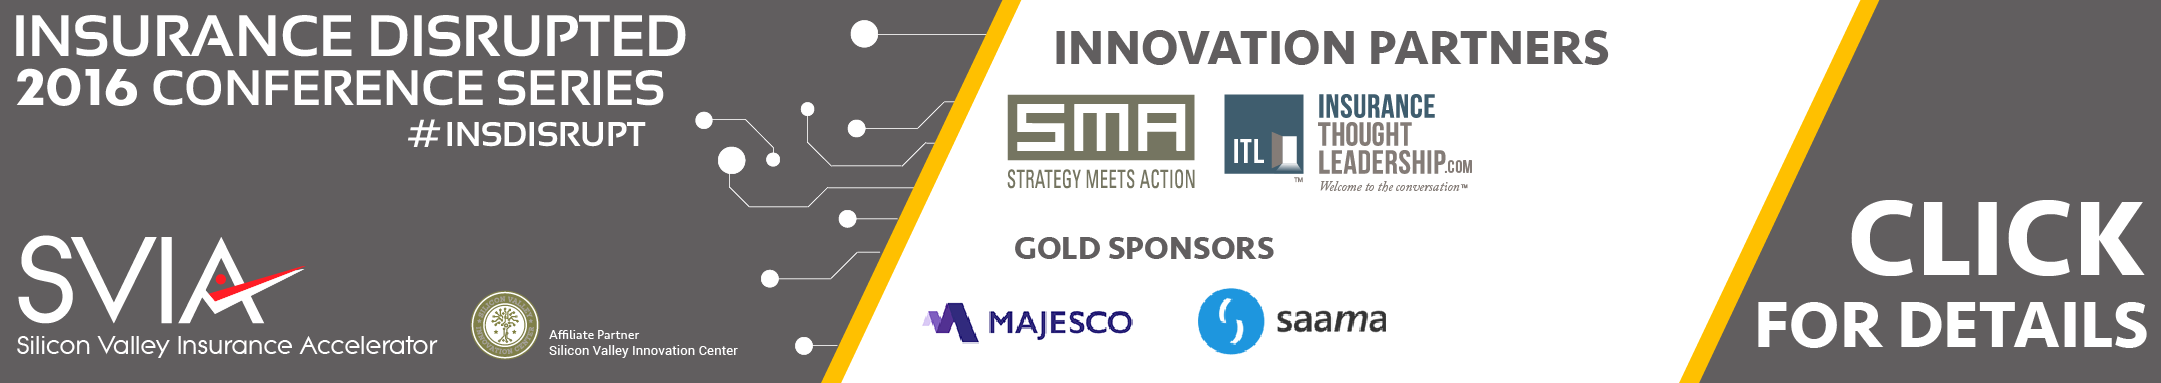 SVIA-Insurnace-Disrupted-2016-Conference-Banner